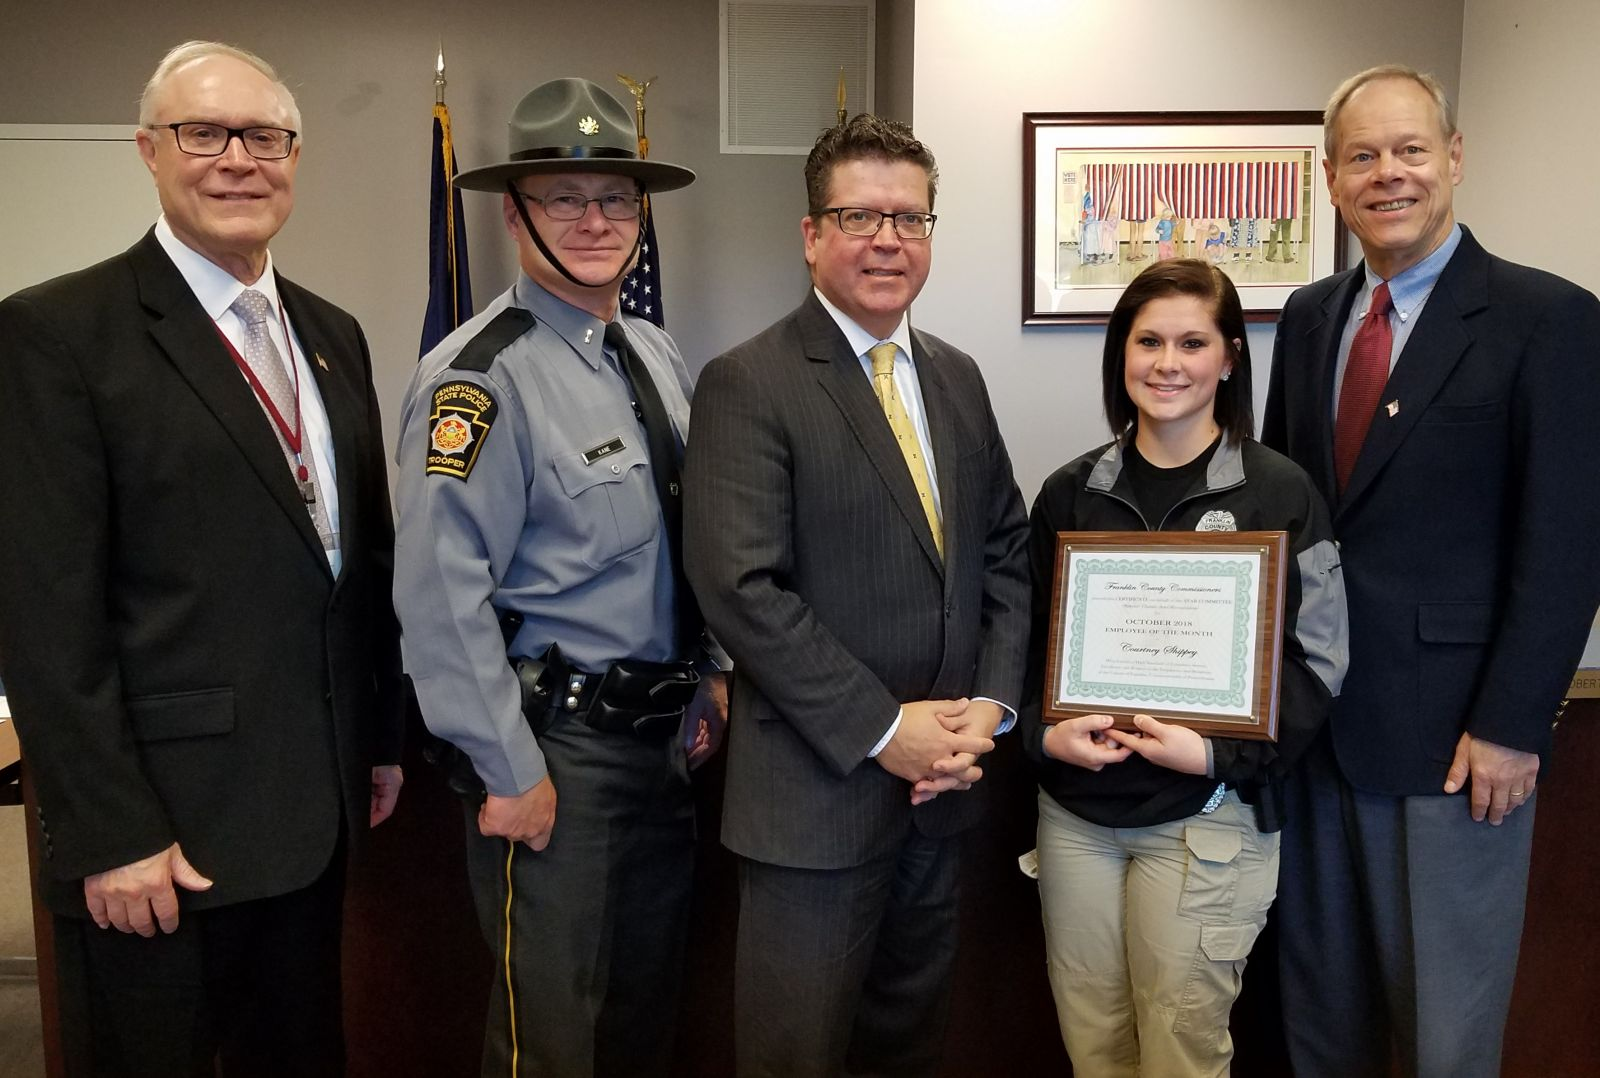 Pictured above (left to right): Commissioner Bob Thomas; Lieutenant Kane; Commissioner Chairman Dave Keller; Officer Courtney Shippey holding an award; Commissioner Bob Ziobrowski